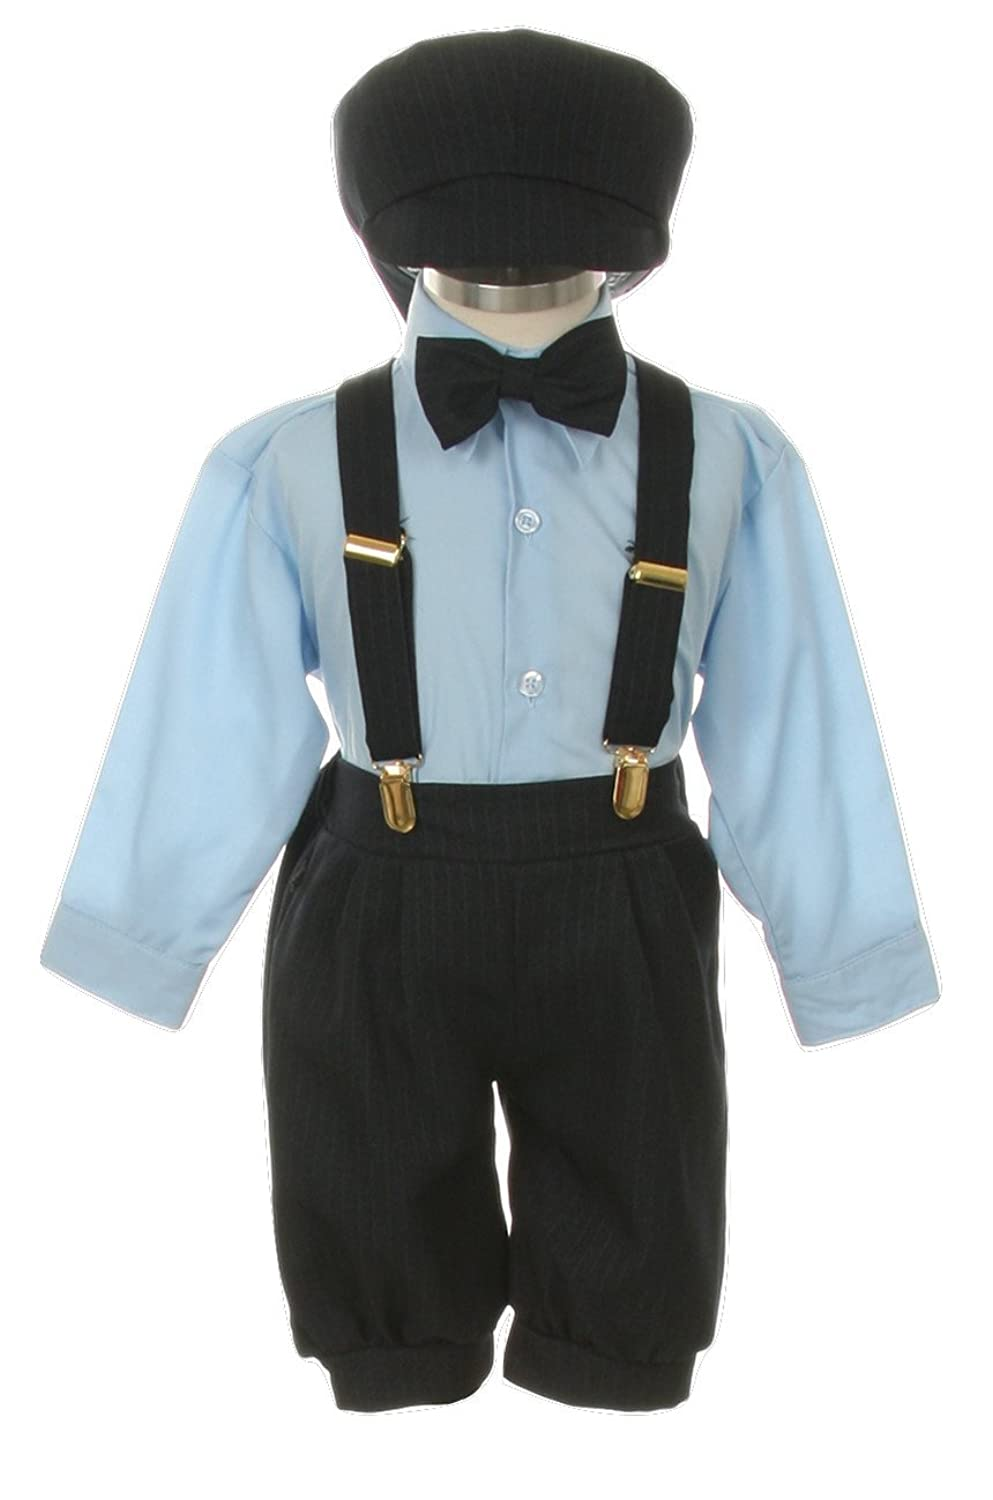 Amazon.com: Vintage Dress Suit-Tuxedo Knickers Outfit Set Baby Boys ...